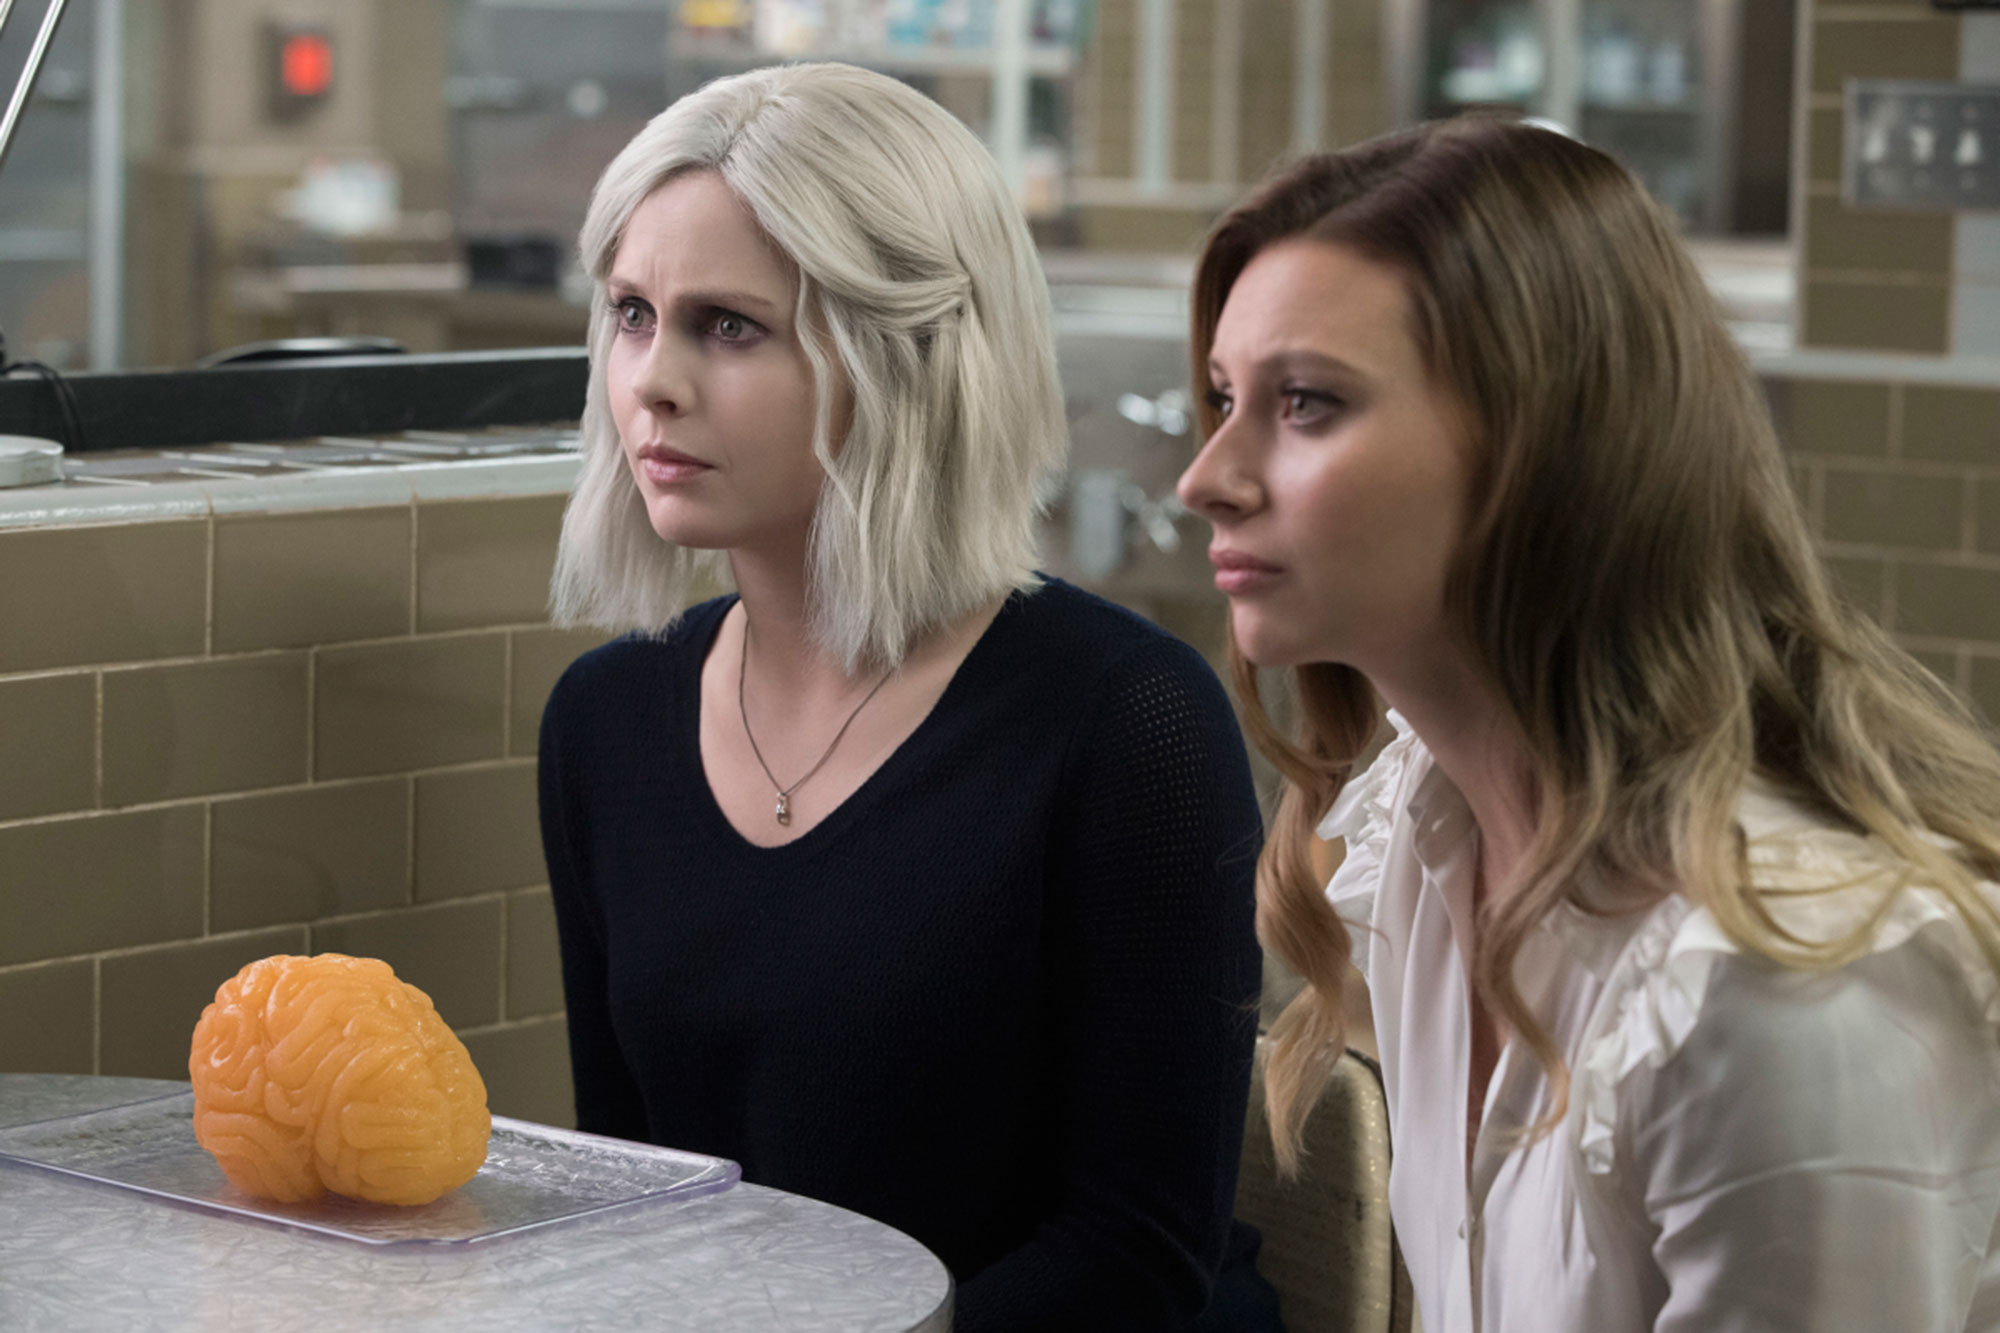 iZombie - The long-awaited CW dramedy returns with its fifth and final season, led by Rose McIver 's Liv Moore. After the bloodier-than-usual season 4 finale killed off her boyfriend Levon ( Daniel Bonjour ), Liv's relationship with Robert Buckley 's Major will finally be resolved.